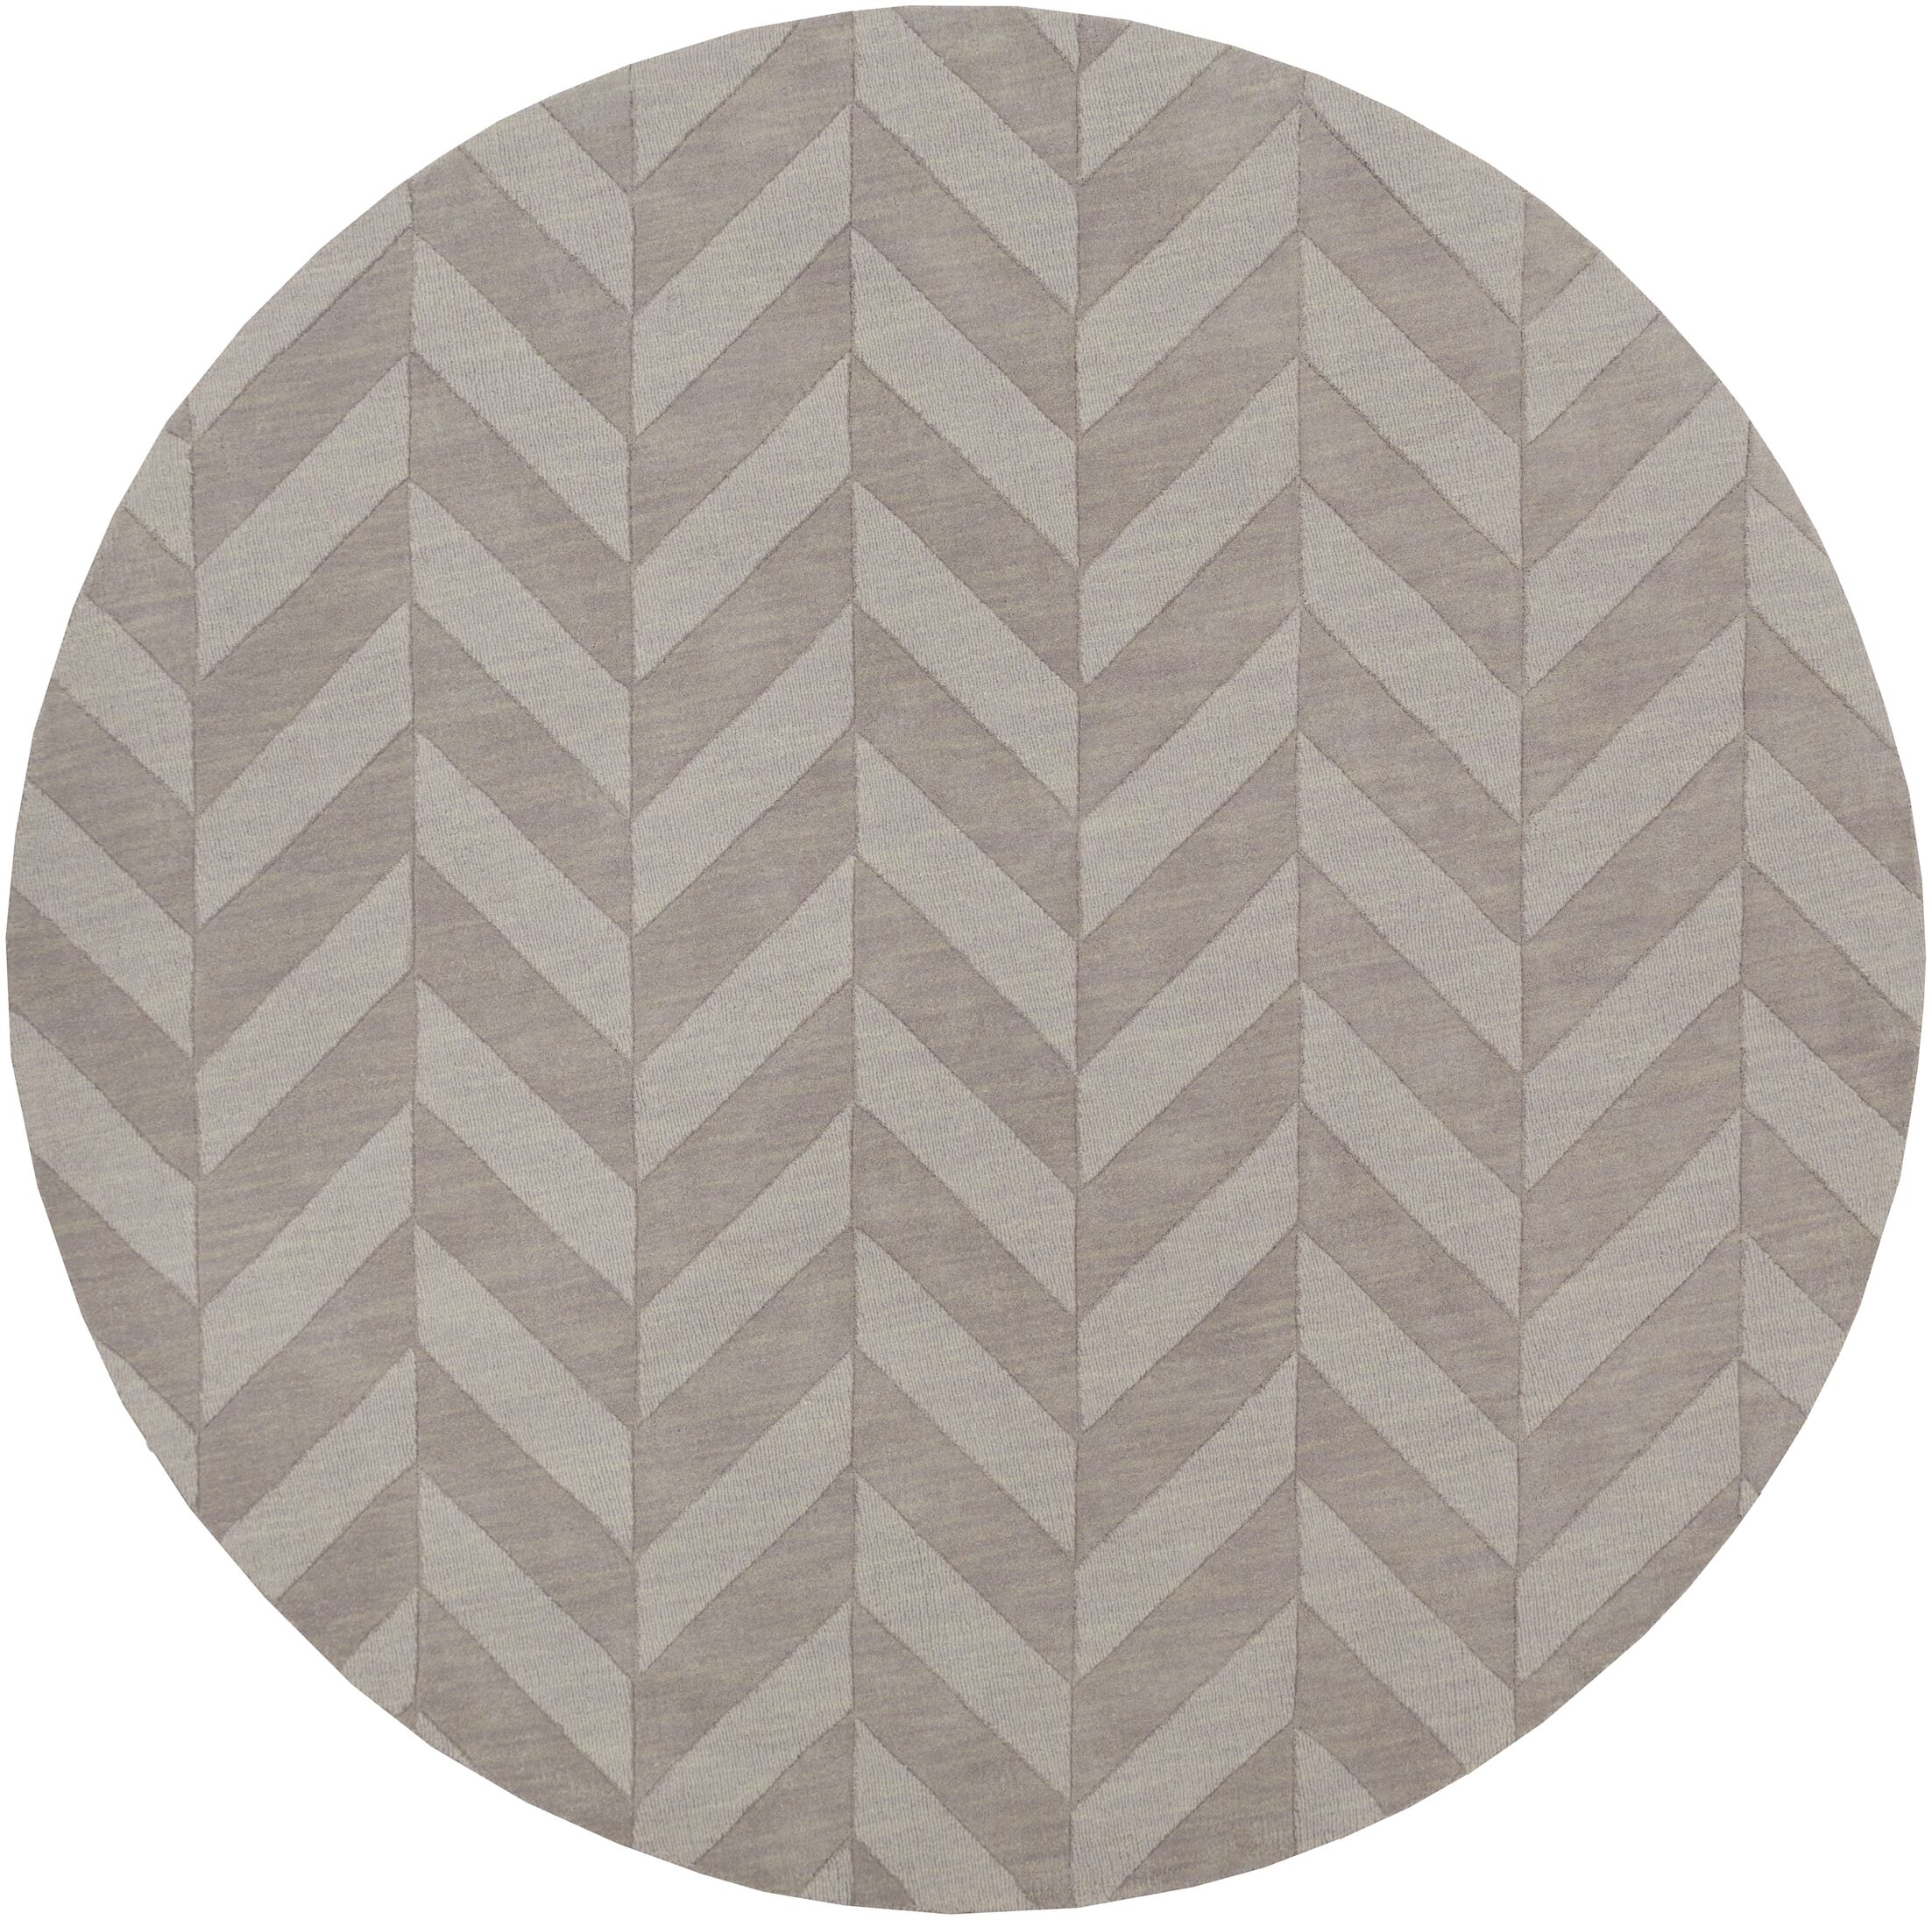 Sunburst Hand Woven Wool Gray Area Rug Rug Size: Round 6'